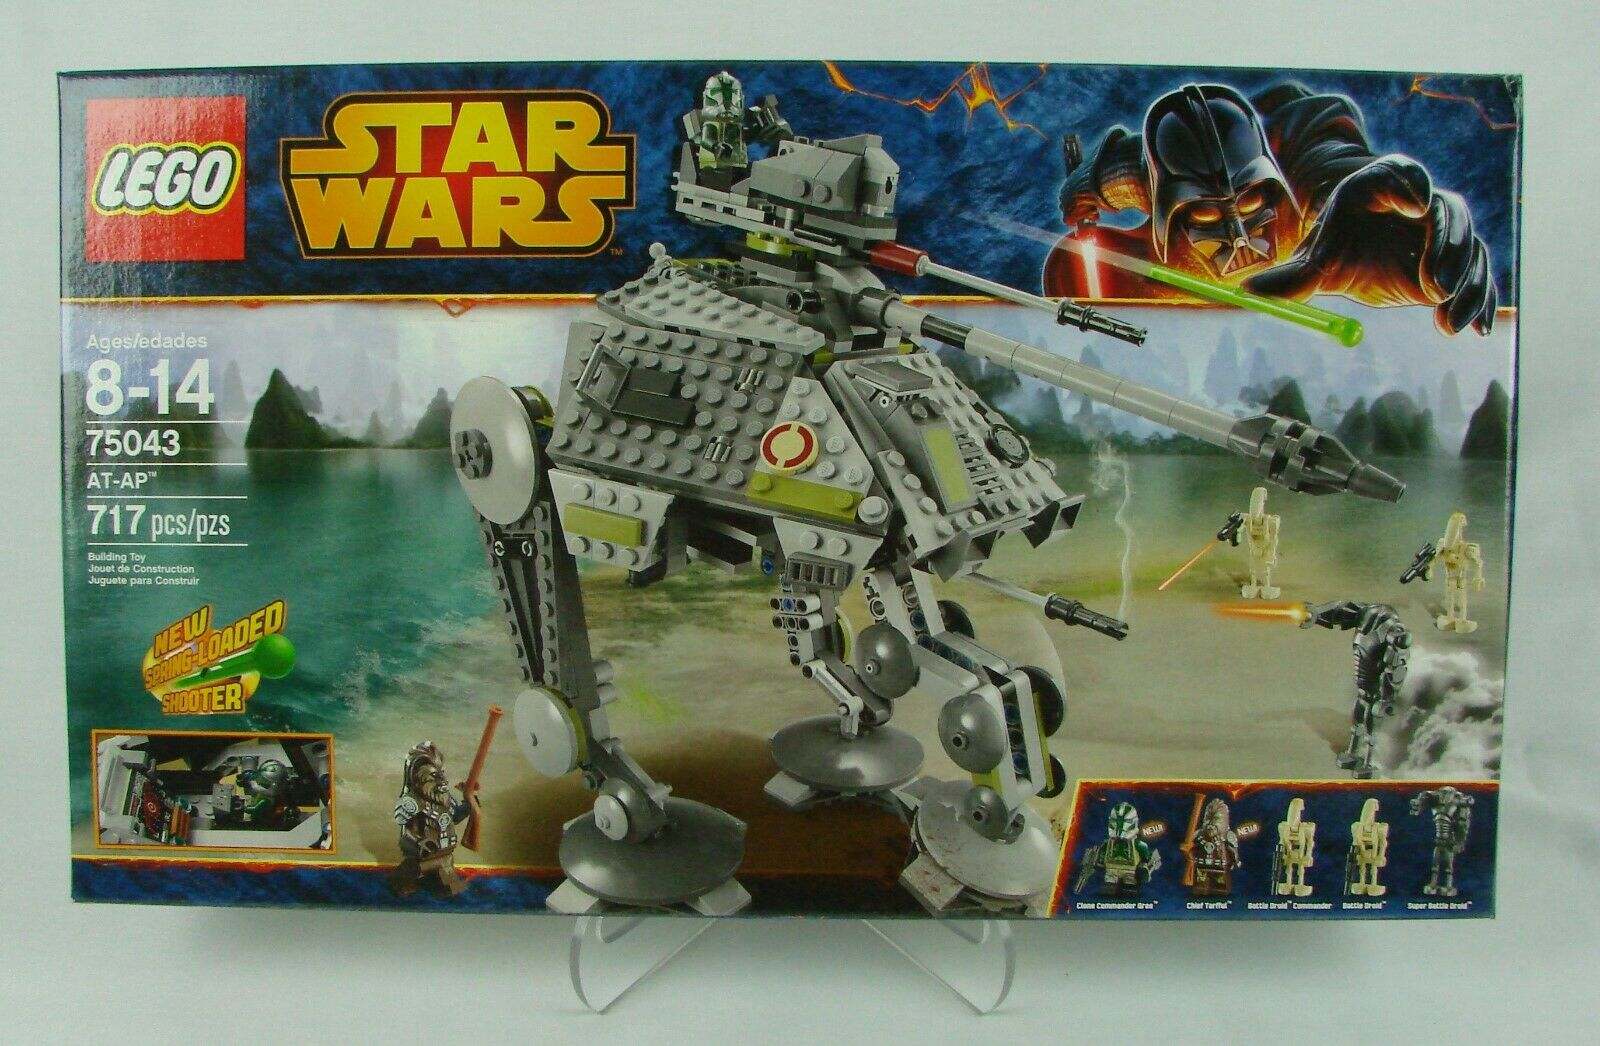 Lego  Star Wars episode III   AT-AP  (2014) 717 pcs  New In Sealed Box